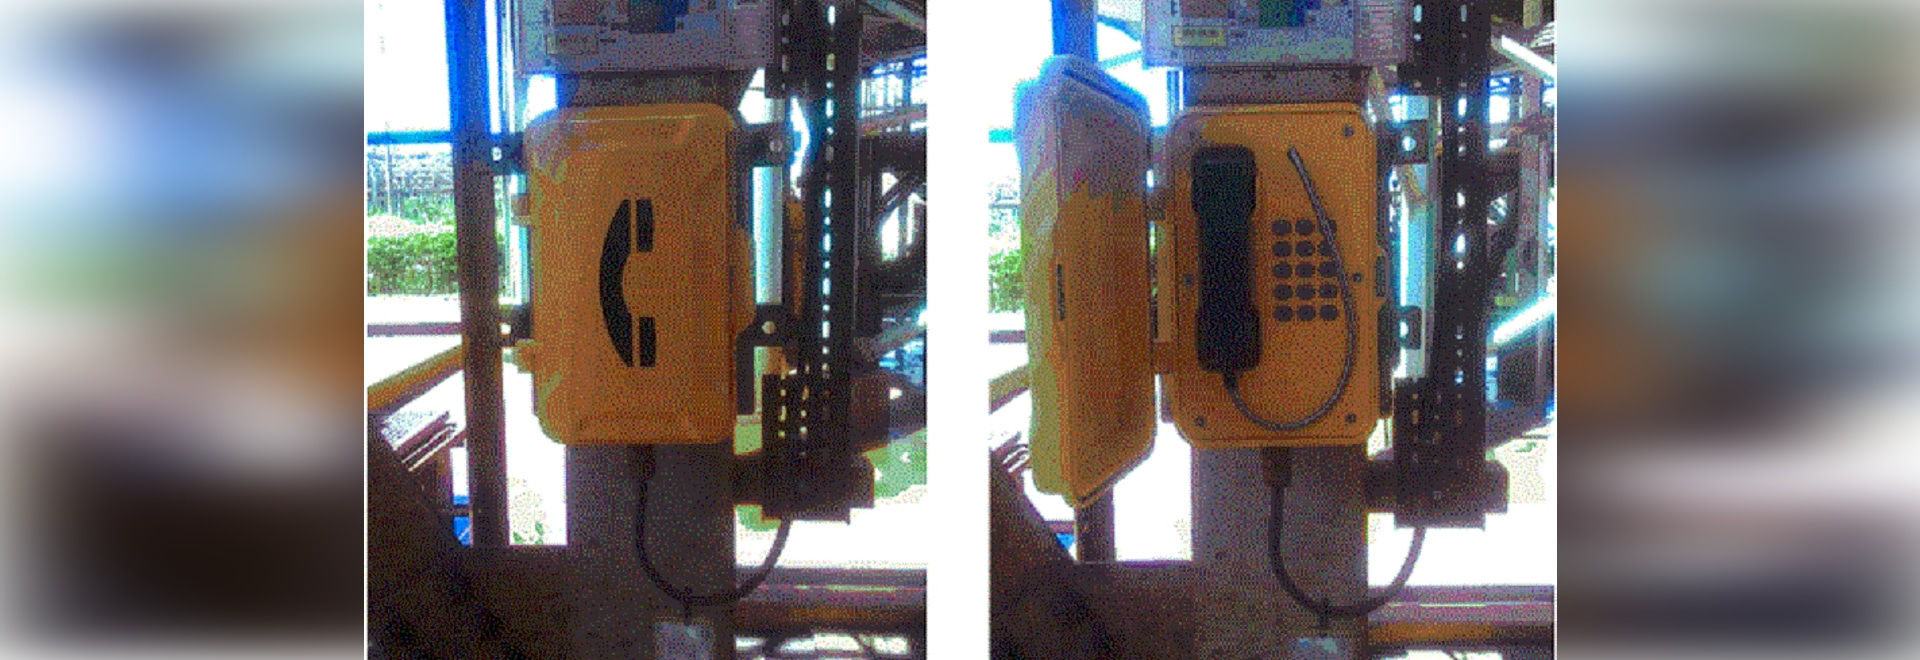 J&R pleased to share with you one more Project News that our Heavy Duty Weatherproof Telephones have been installed in a metal processing plant, in the Philippines.